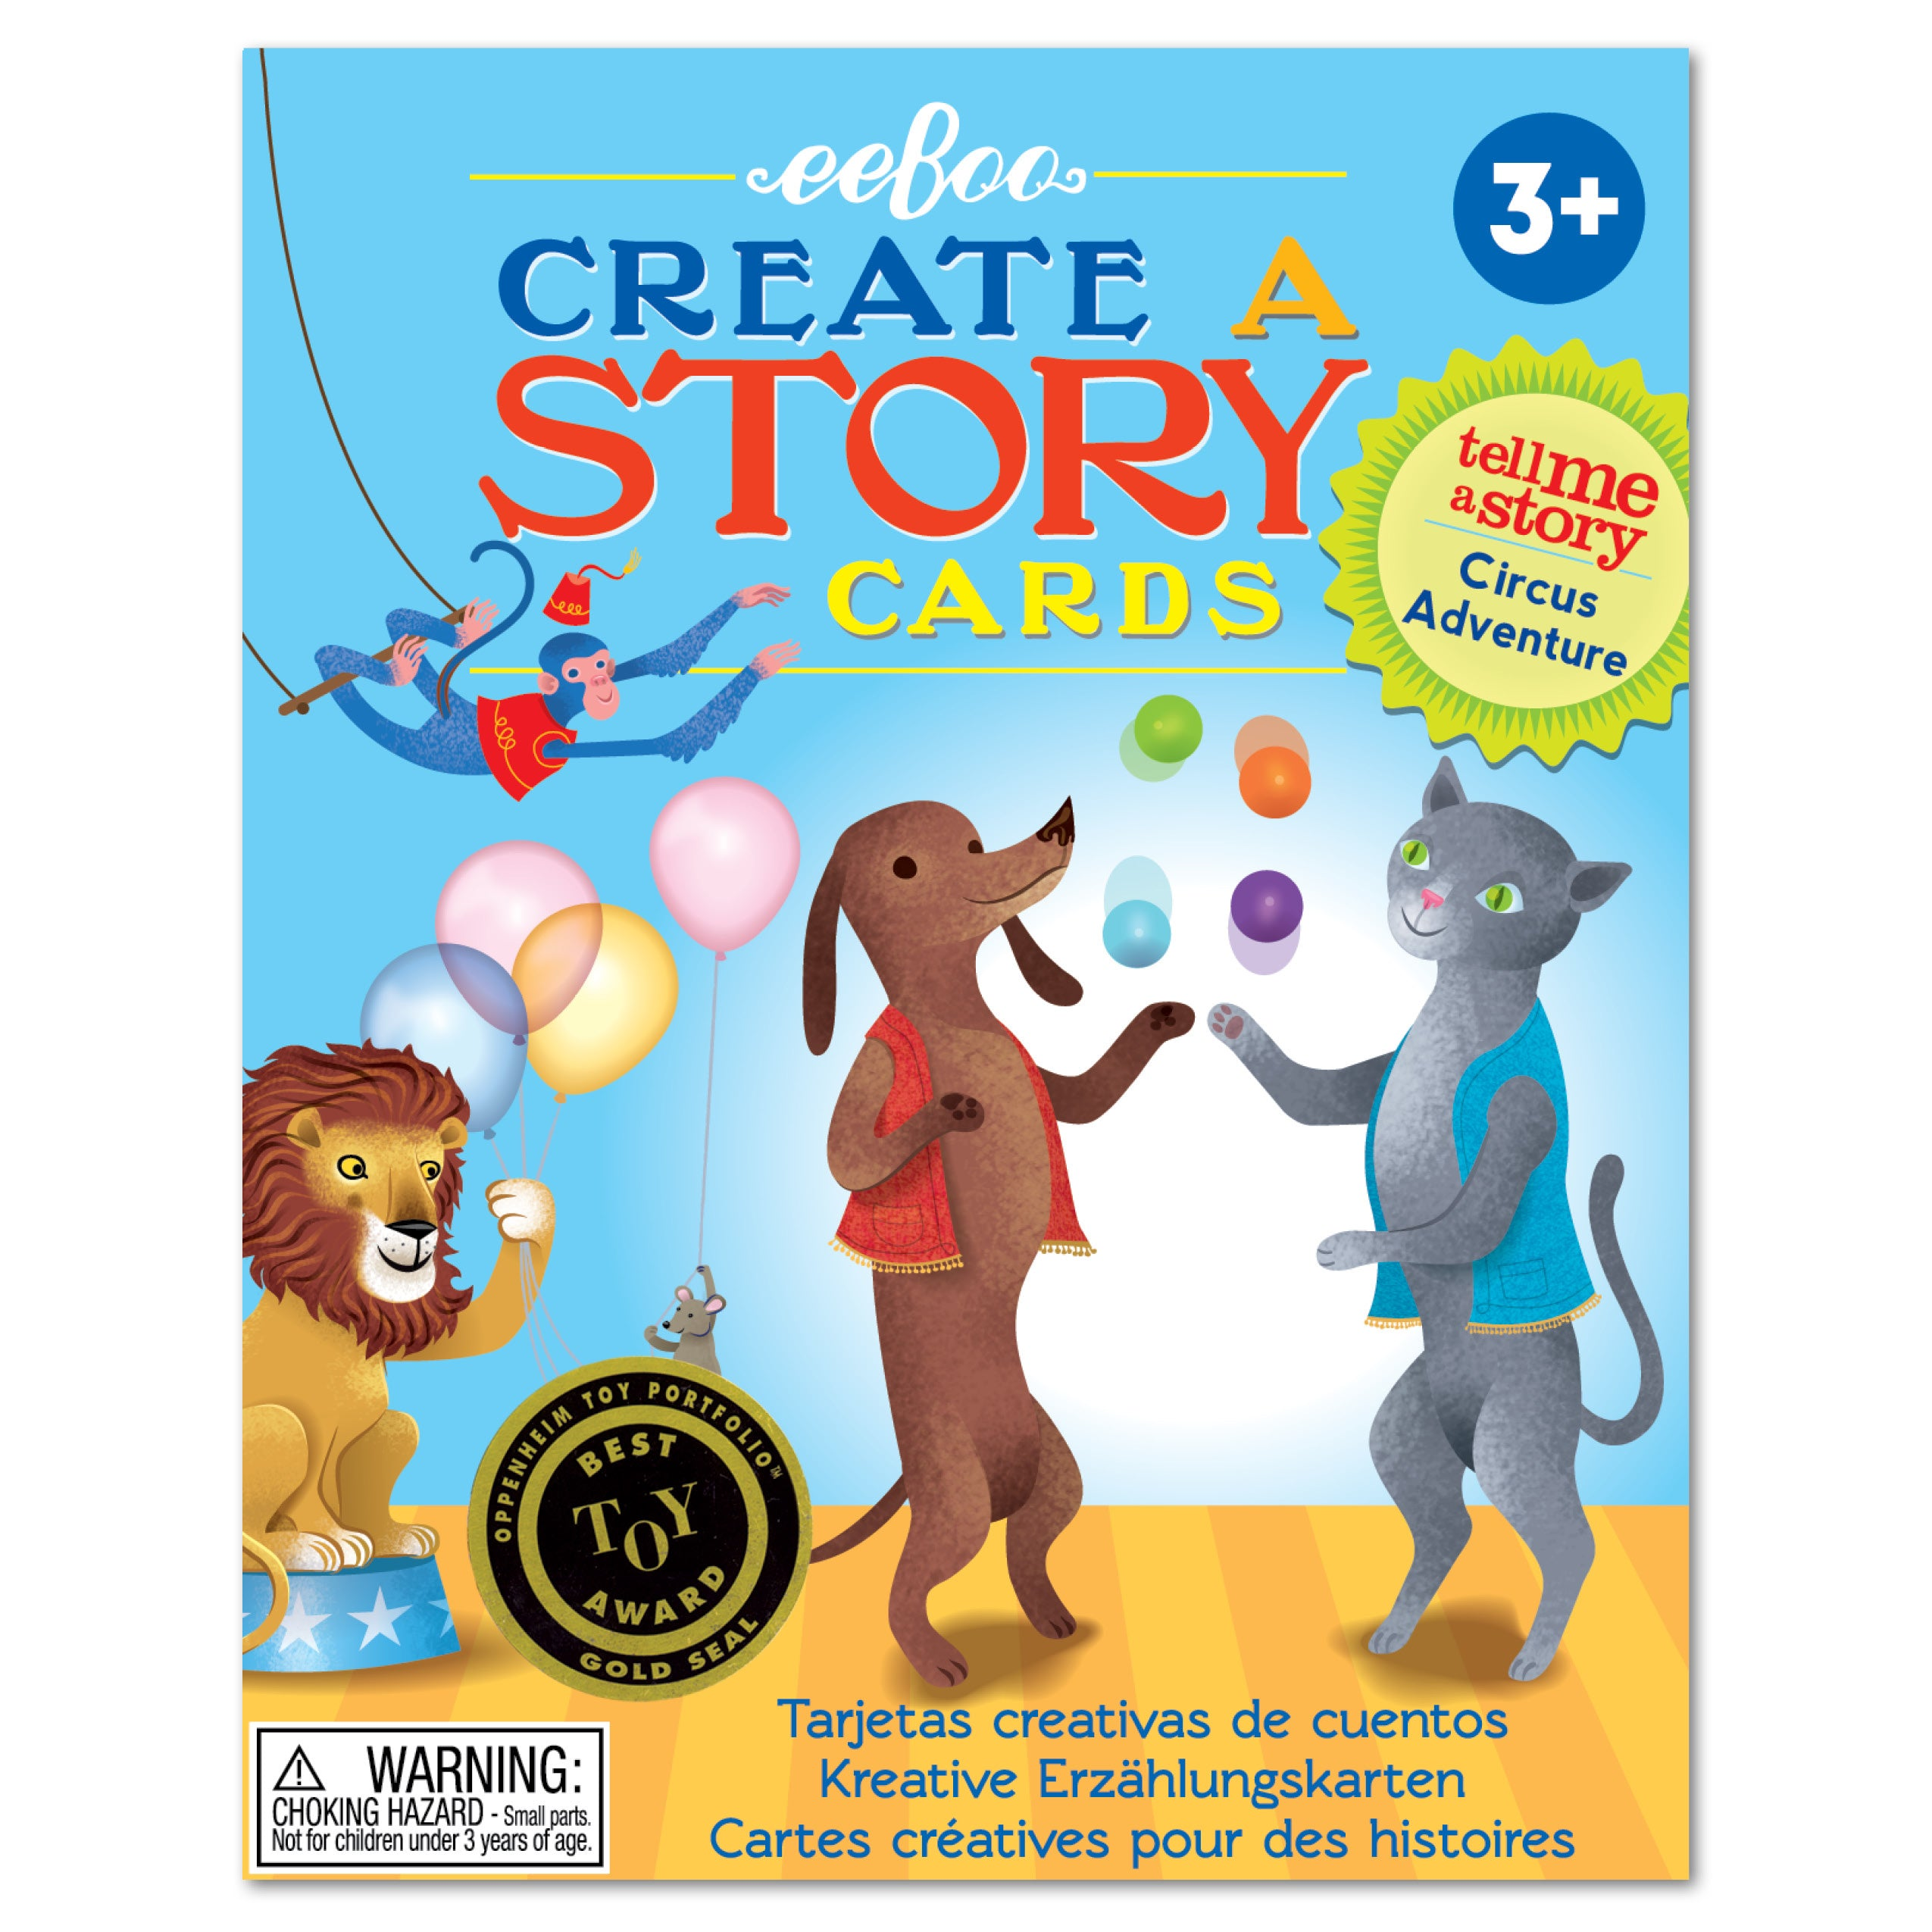 Circus Adventure - Tell Me a Story